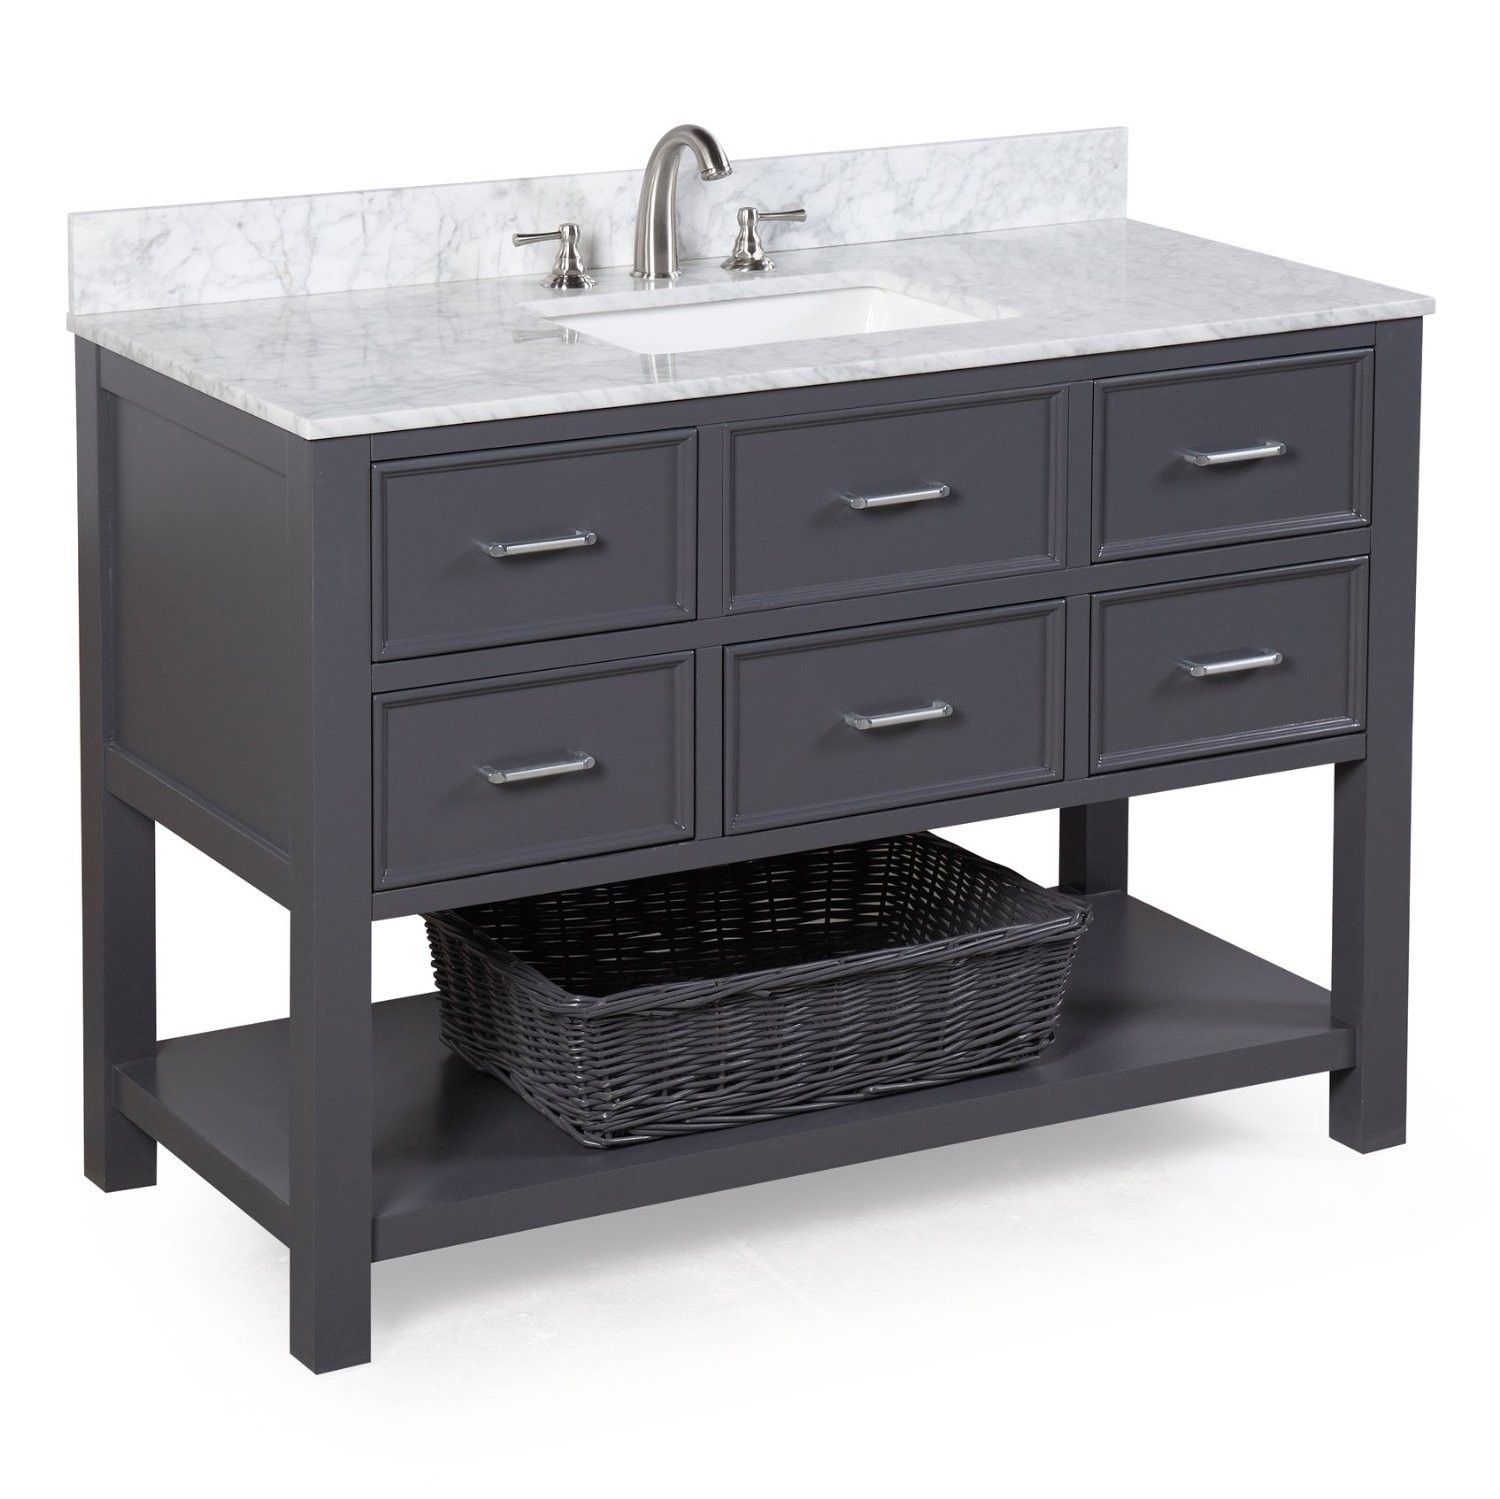 Features Authentic Carrara Marble Countertop Soft Close Function Style Contemporary Single Sink Bathroom Vanity Bathroom Sink Vanity Bathroom Vanity